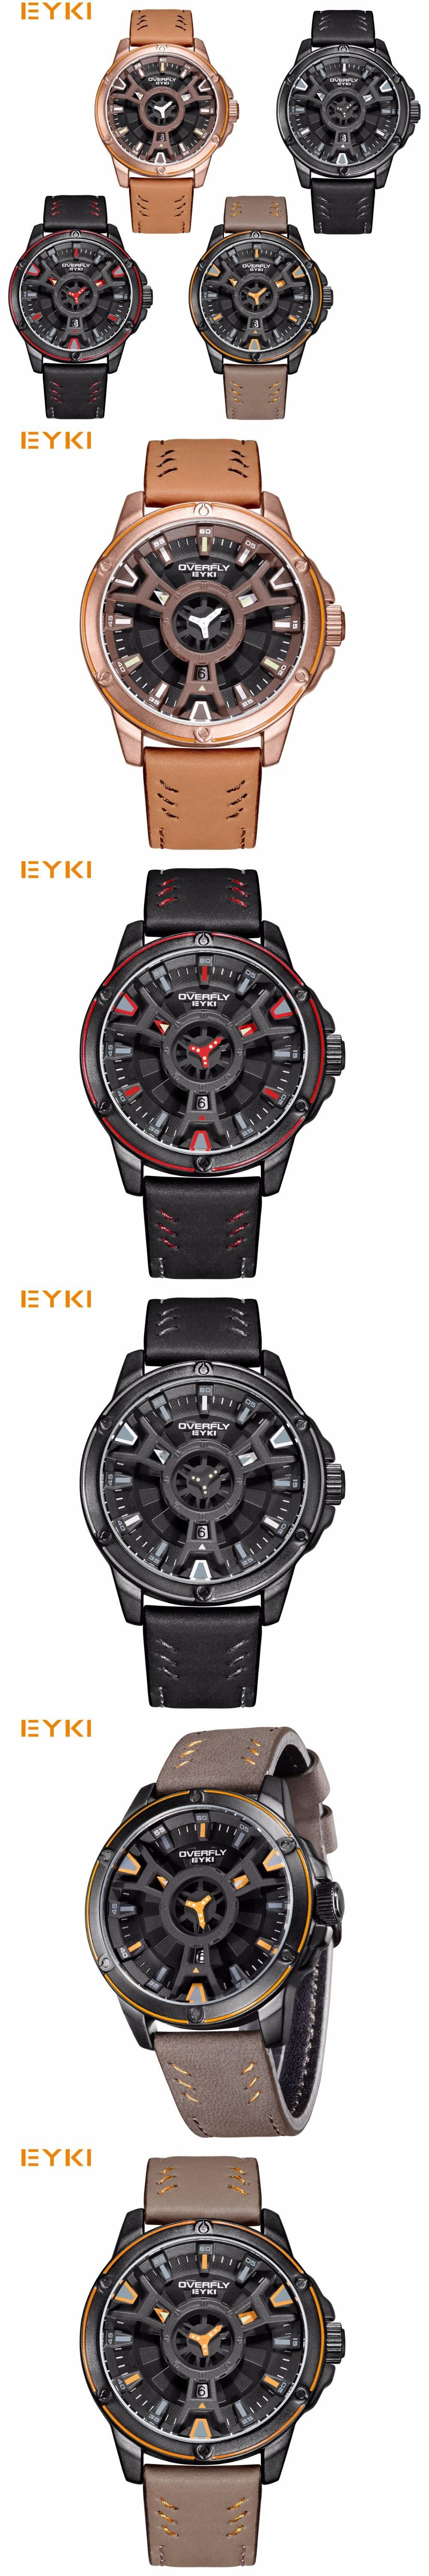 face resistant water watch sport wrist miykon products redcar co seven watches mikyon clocktime